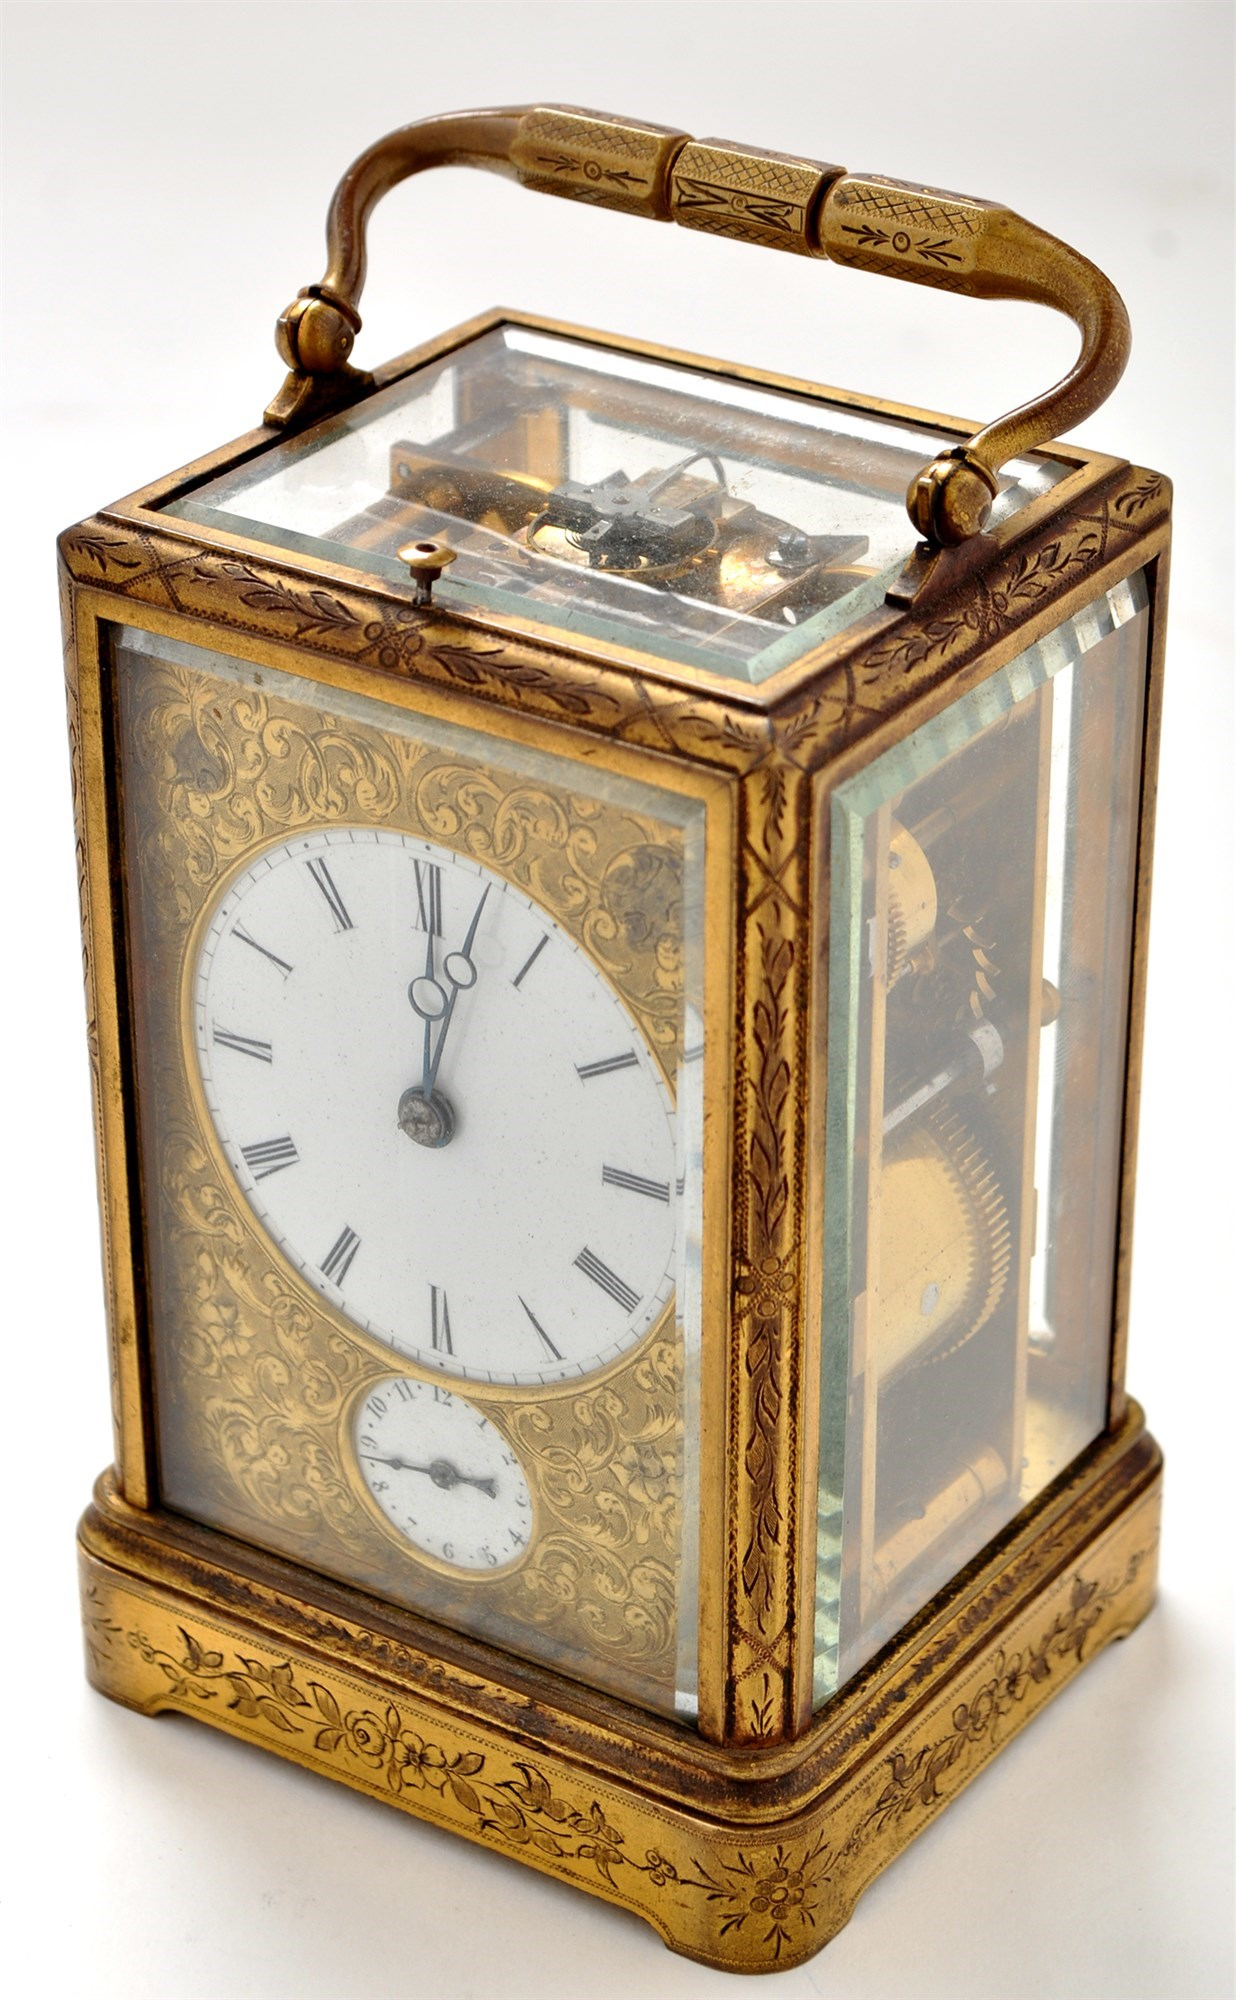 Drocourt: a late 19th Century engraved gilt brass striking and repeating alarm carriage clock